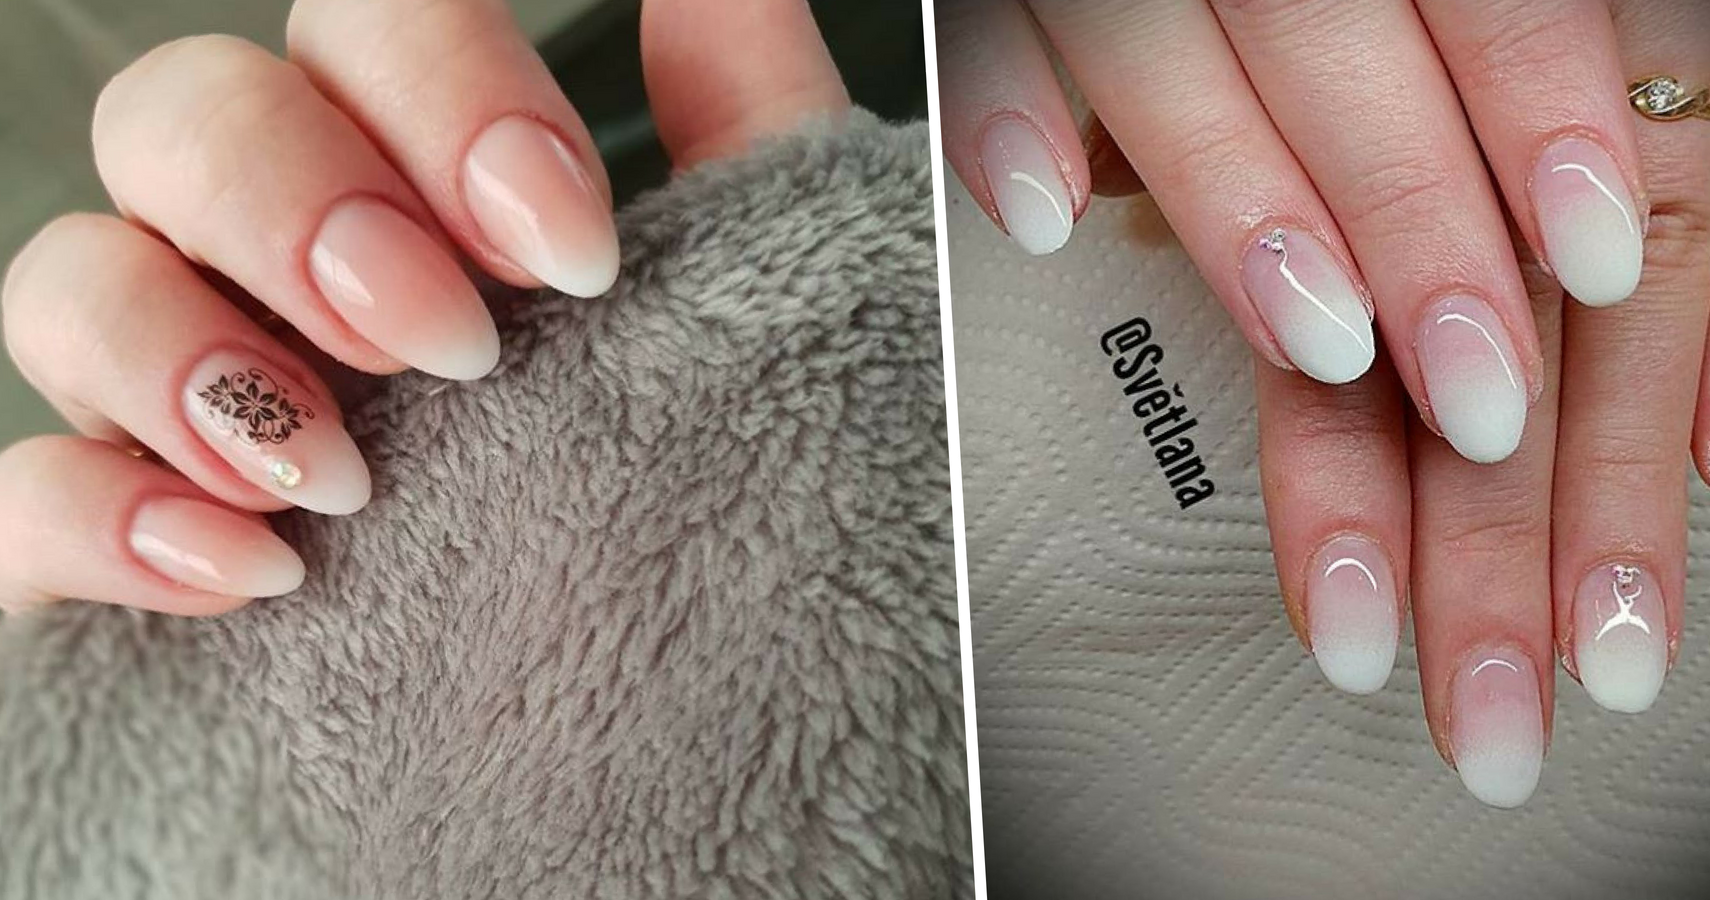 Baby Boomer Nails Is The Latest Nail Trend That Makes Sense For Moms